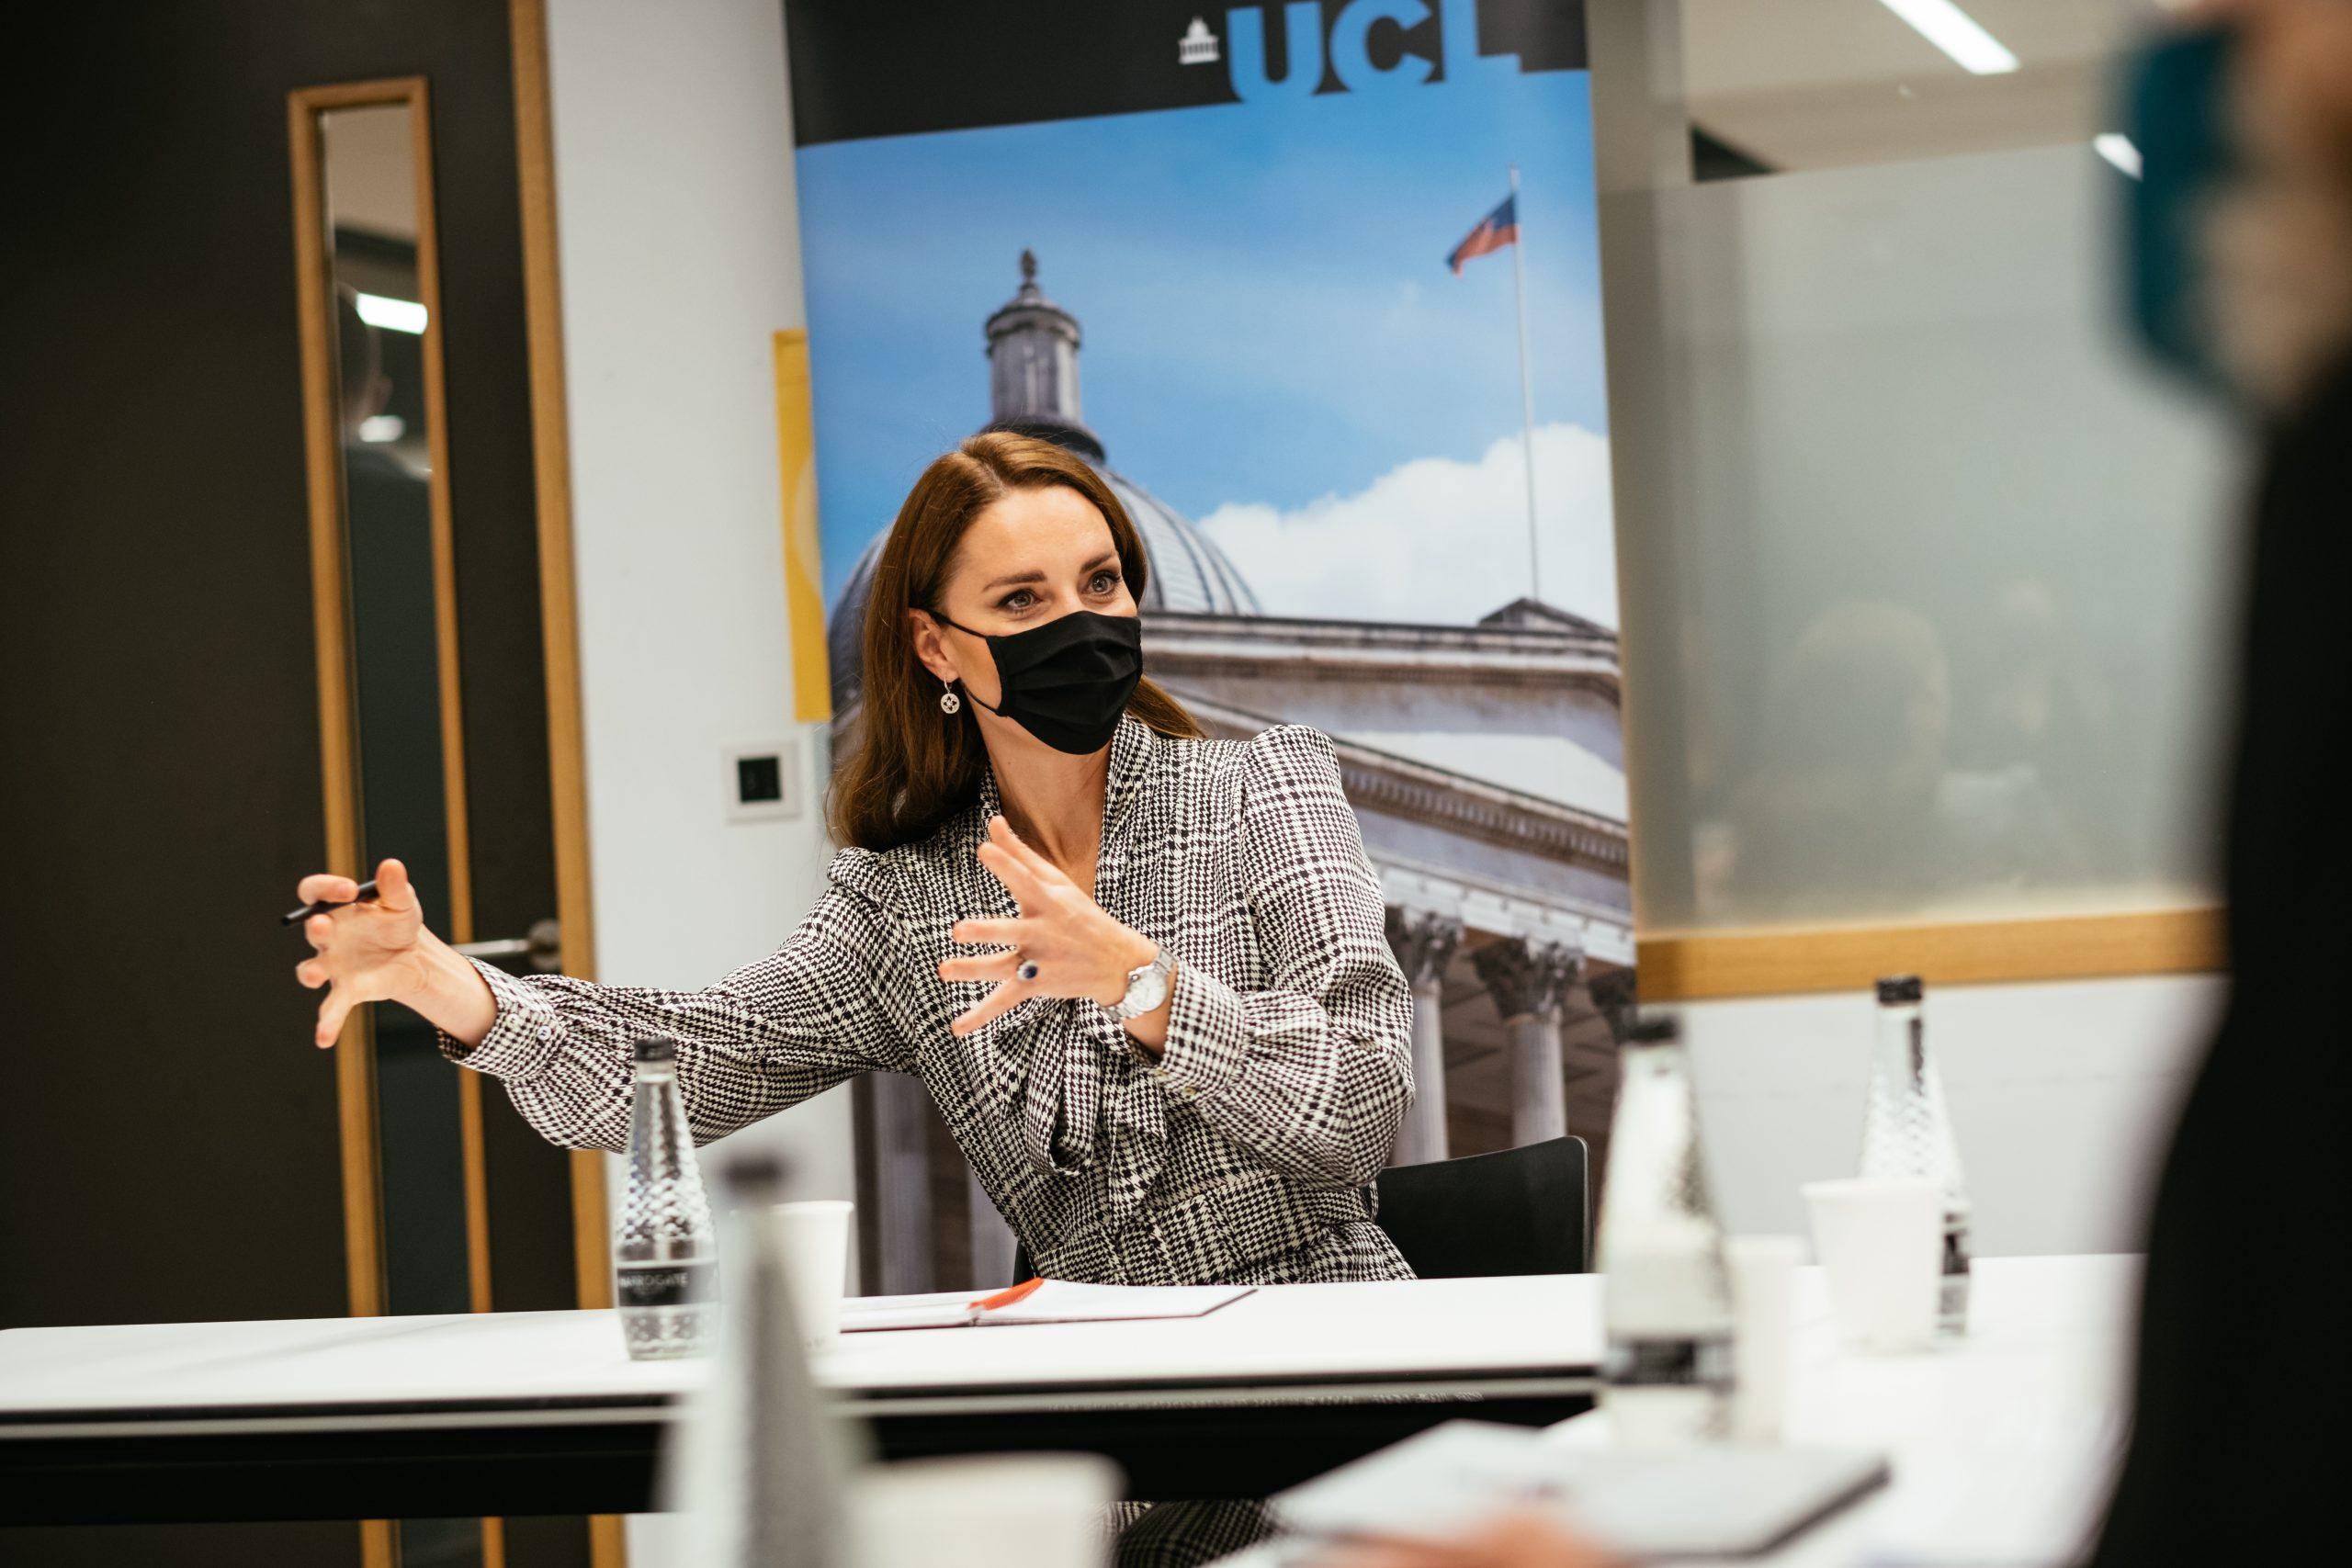 The Duchess of Cambridge explaining something in front of a UCL banner